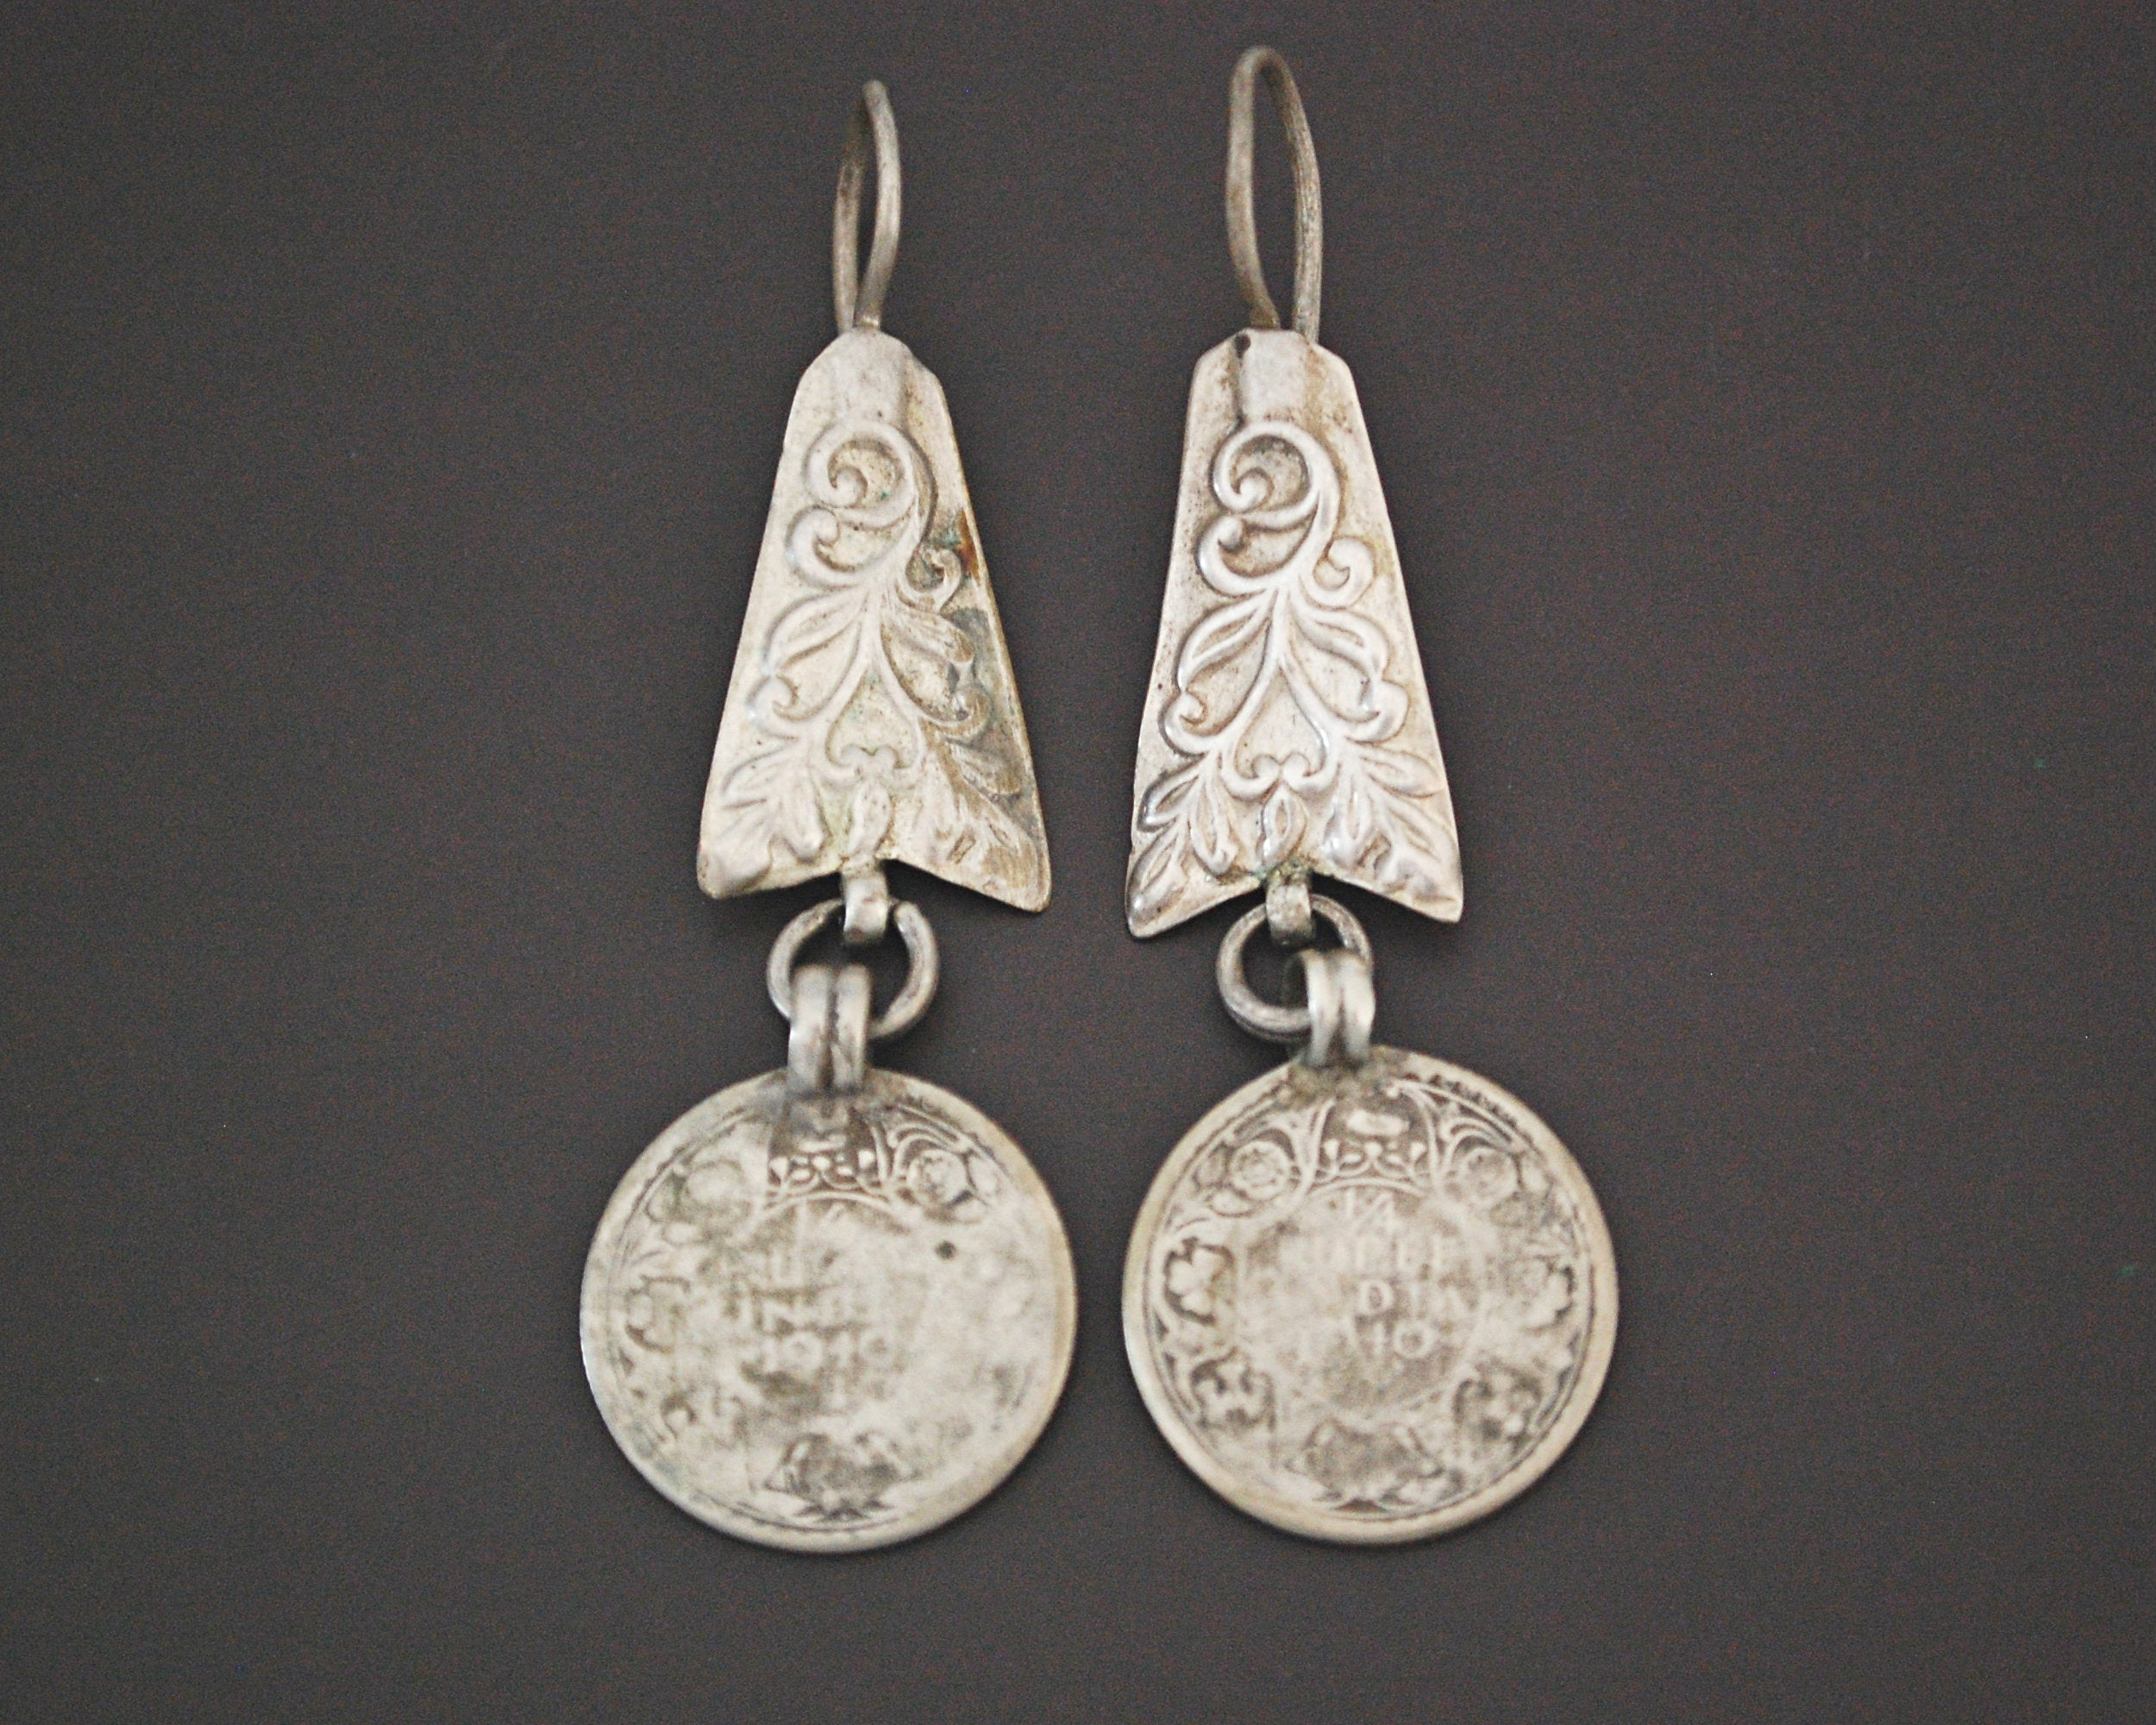 Ethnic Indian Earrings with Coins